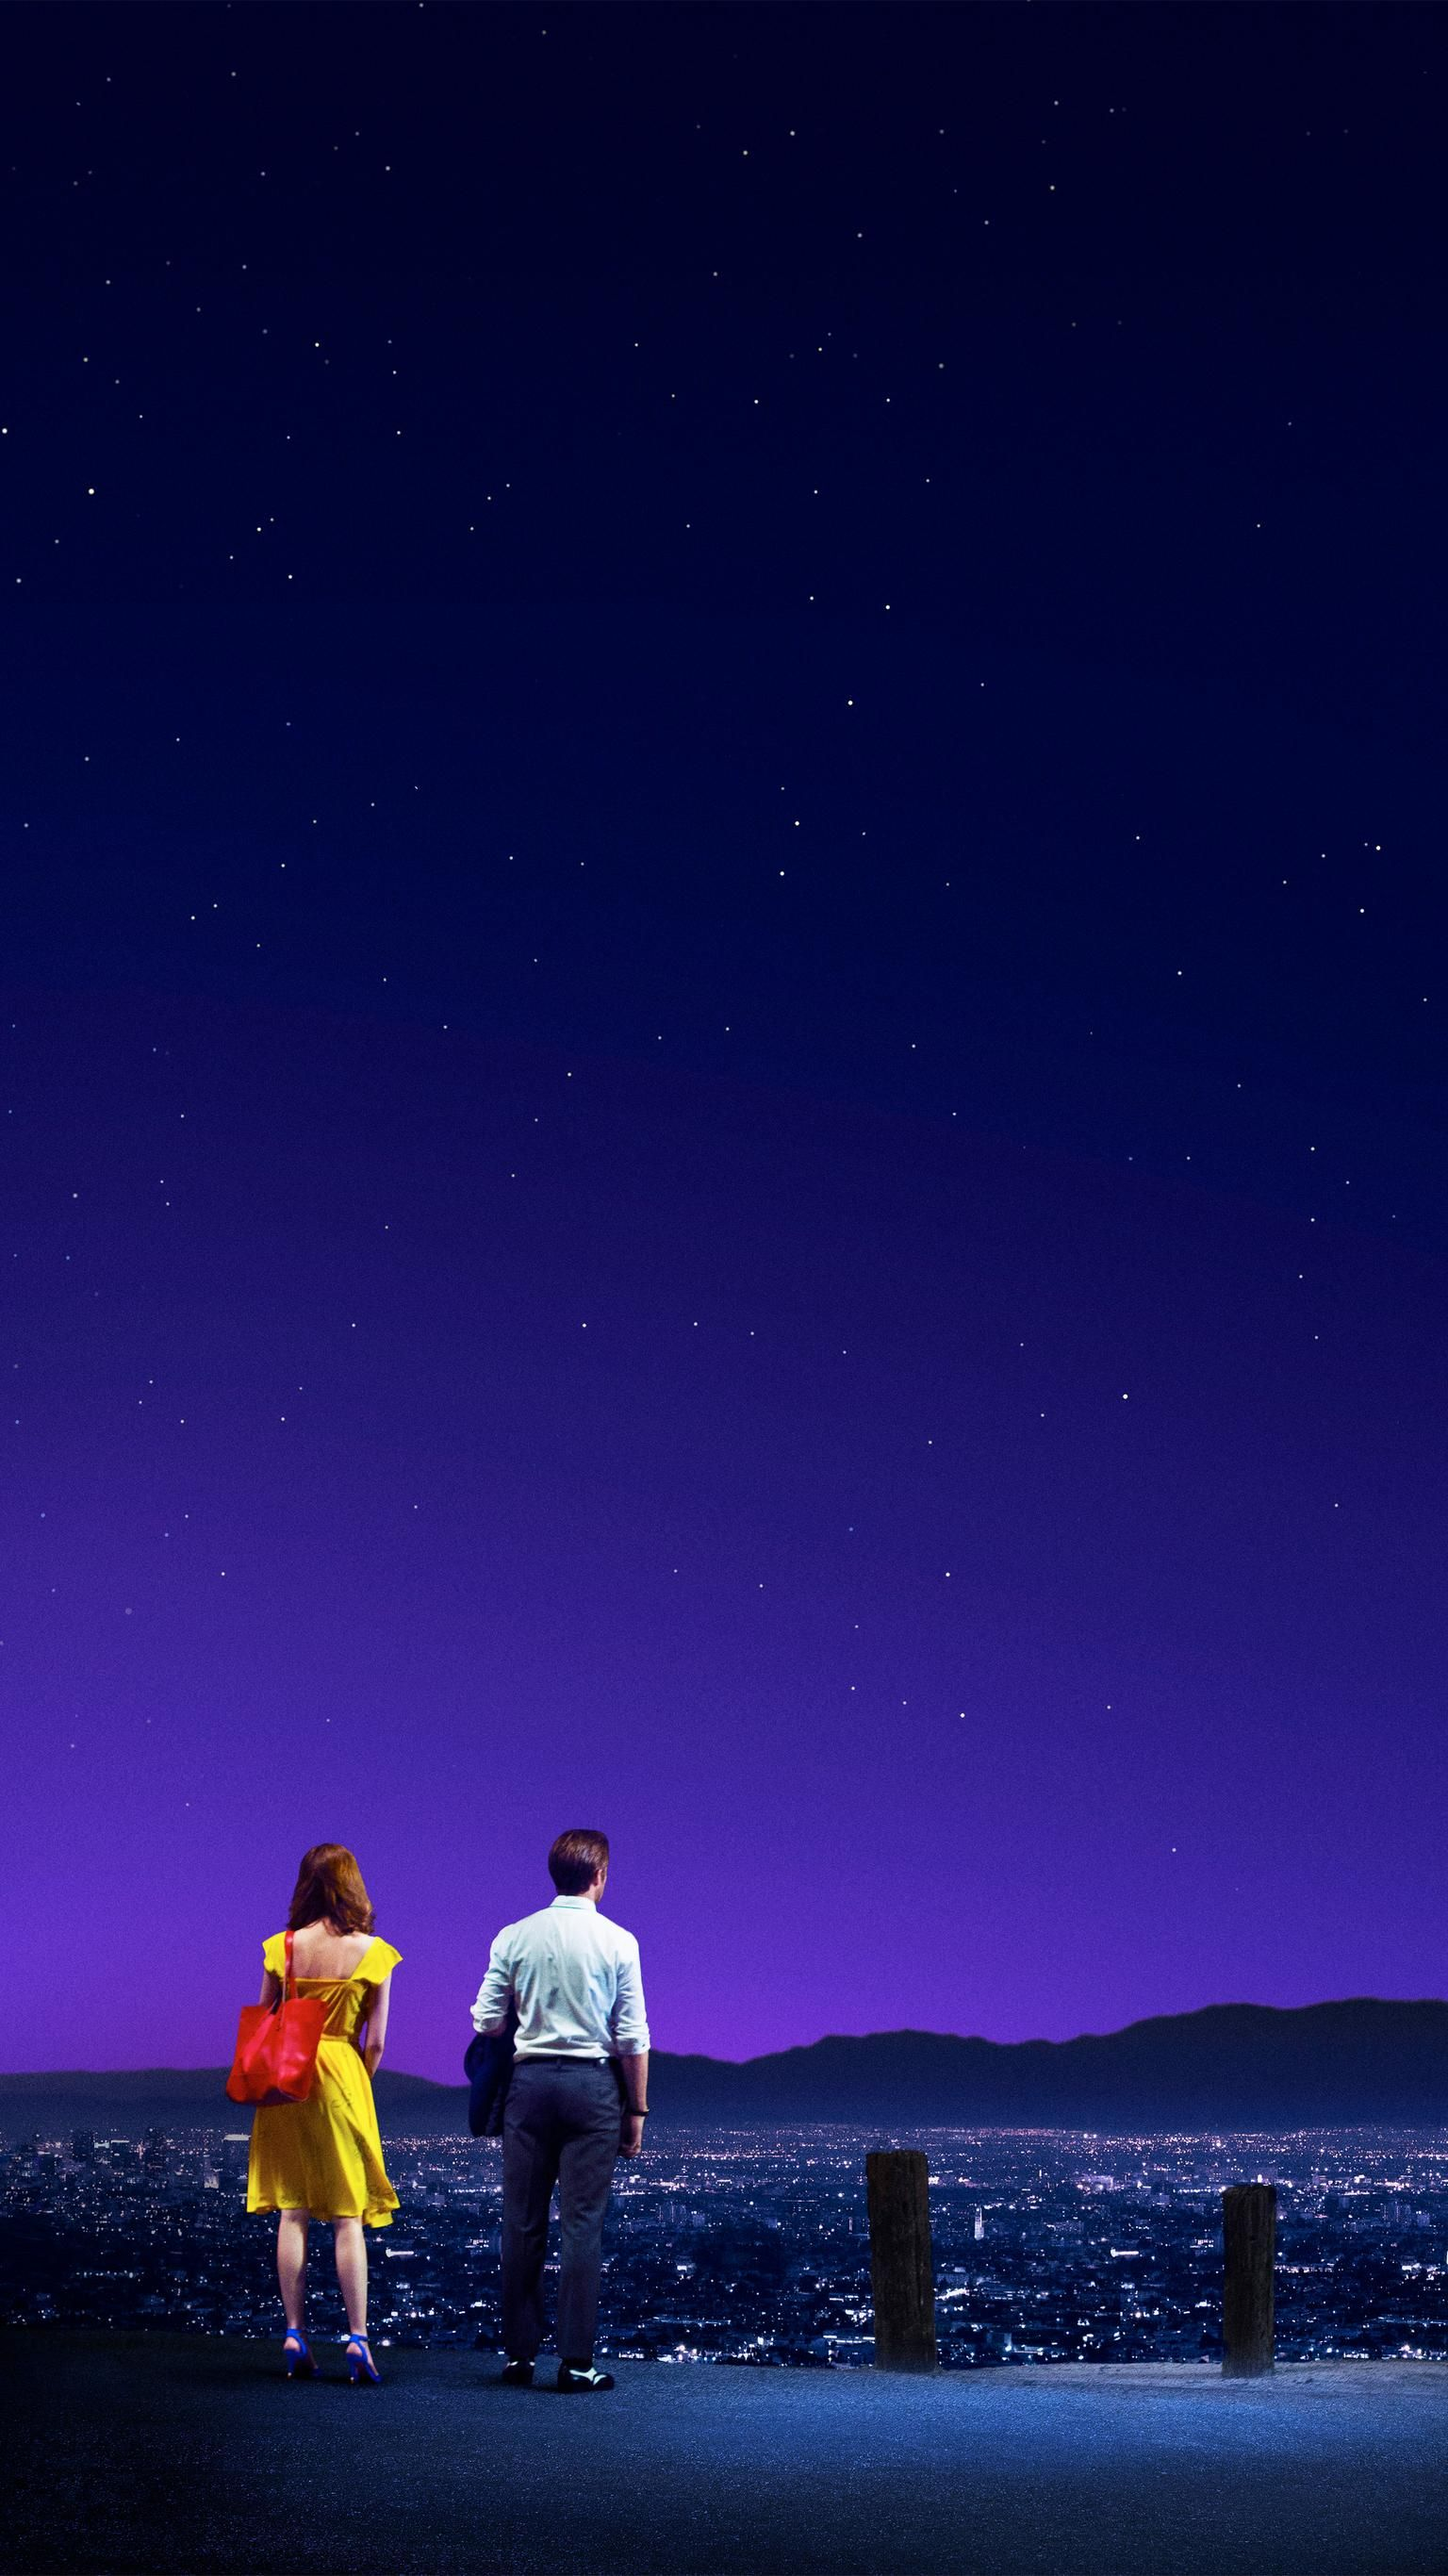 Moviemania Textless High Resolution Movie Wallpapers La La Land Movie Wallpapers Film Aesthetic